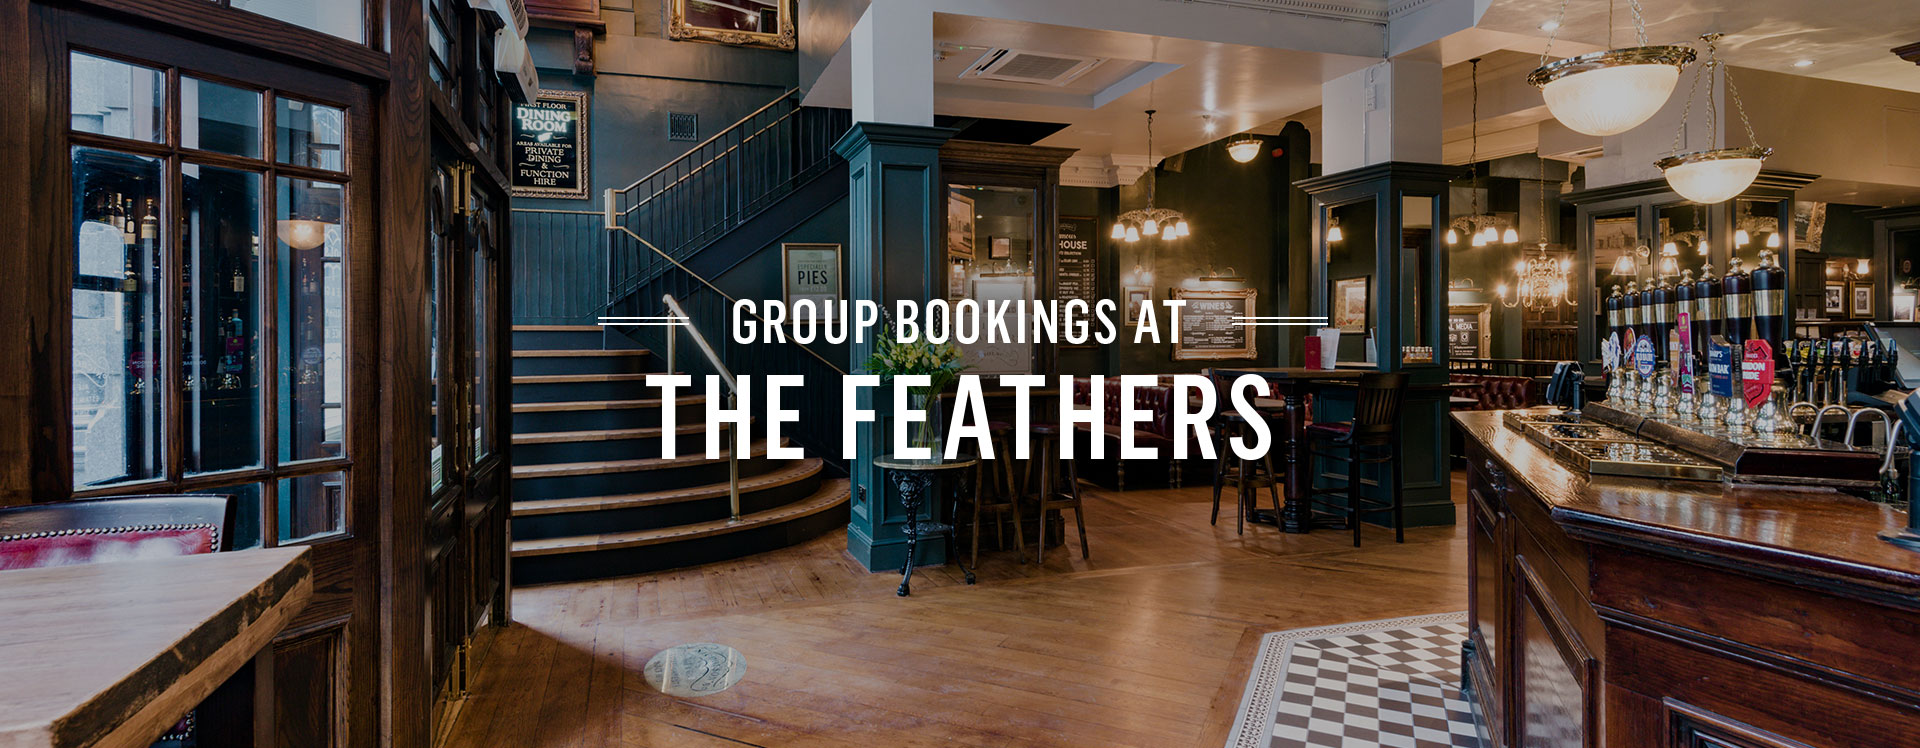 Group Bookings at The Feathers